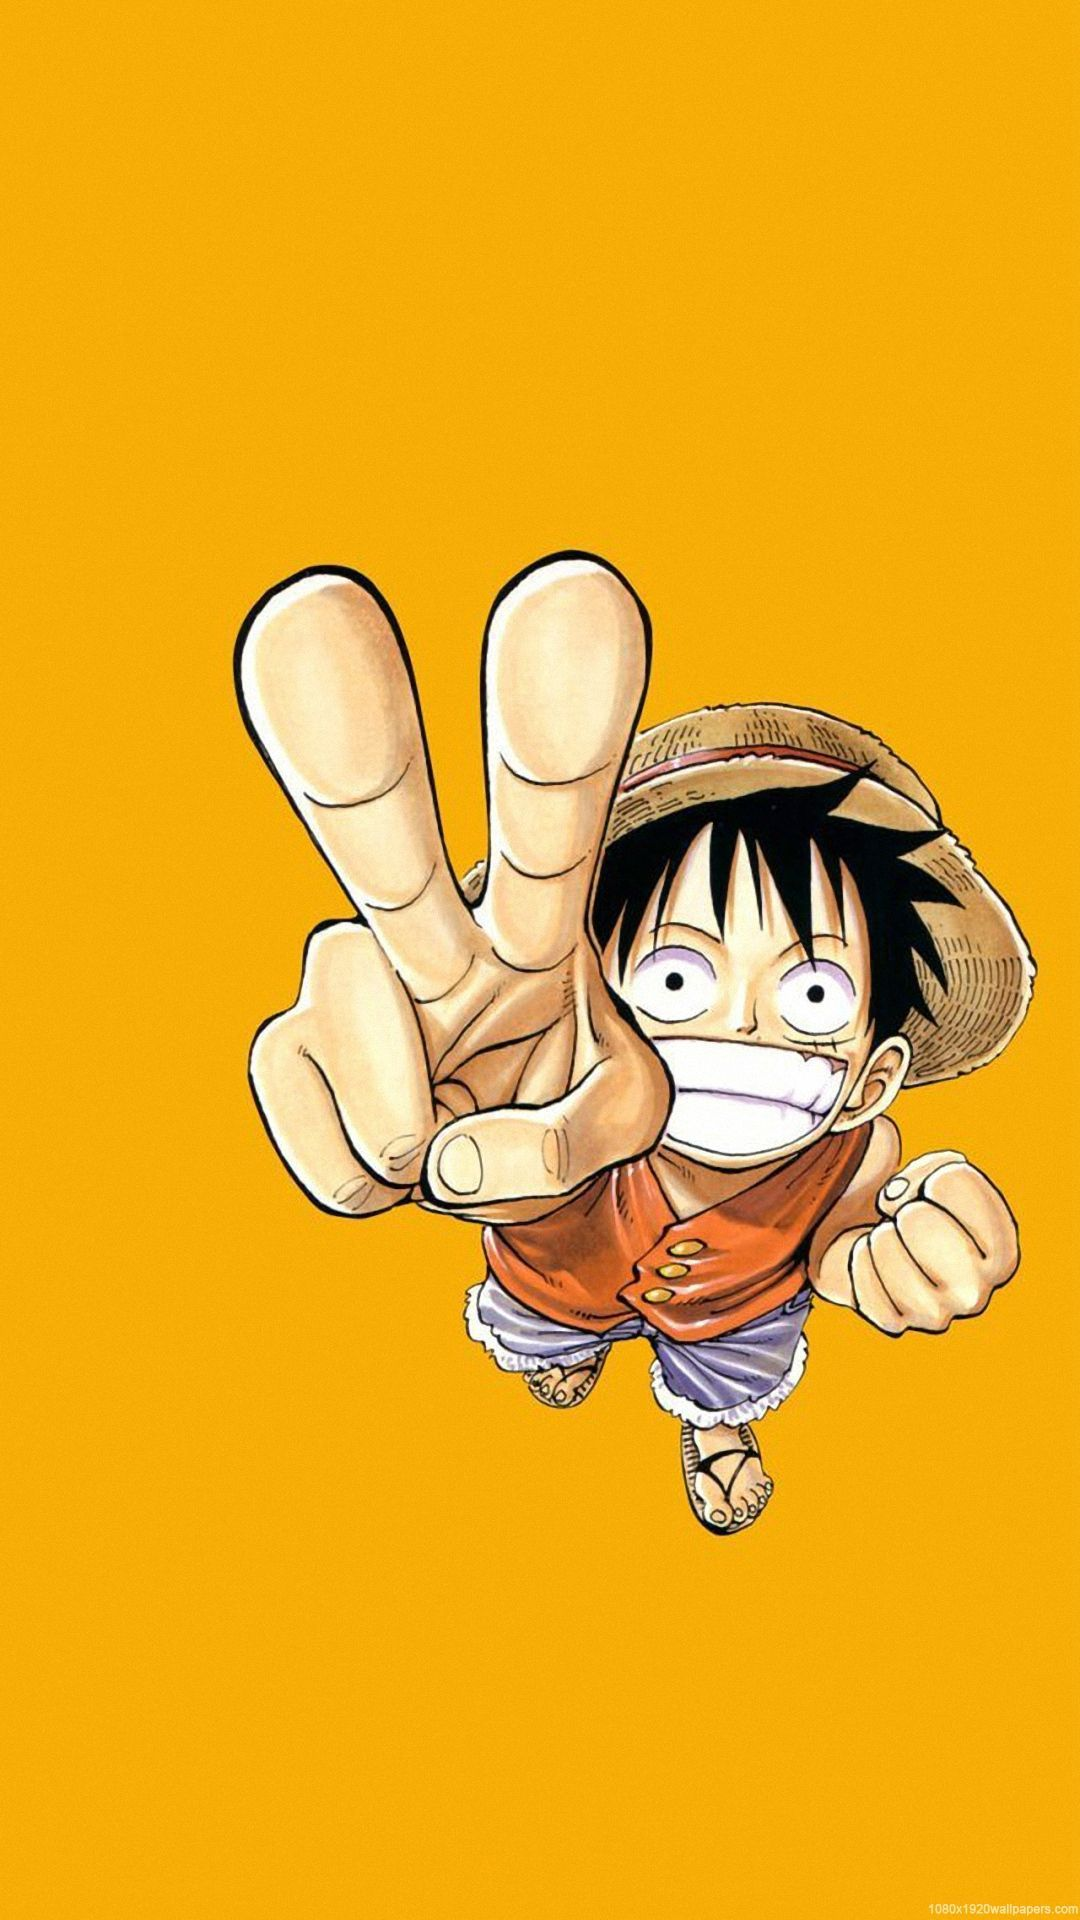 Hd One Piece Android Wallpapers Wallpaper Cave